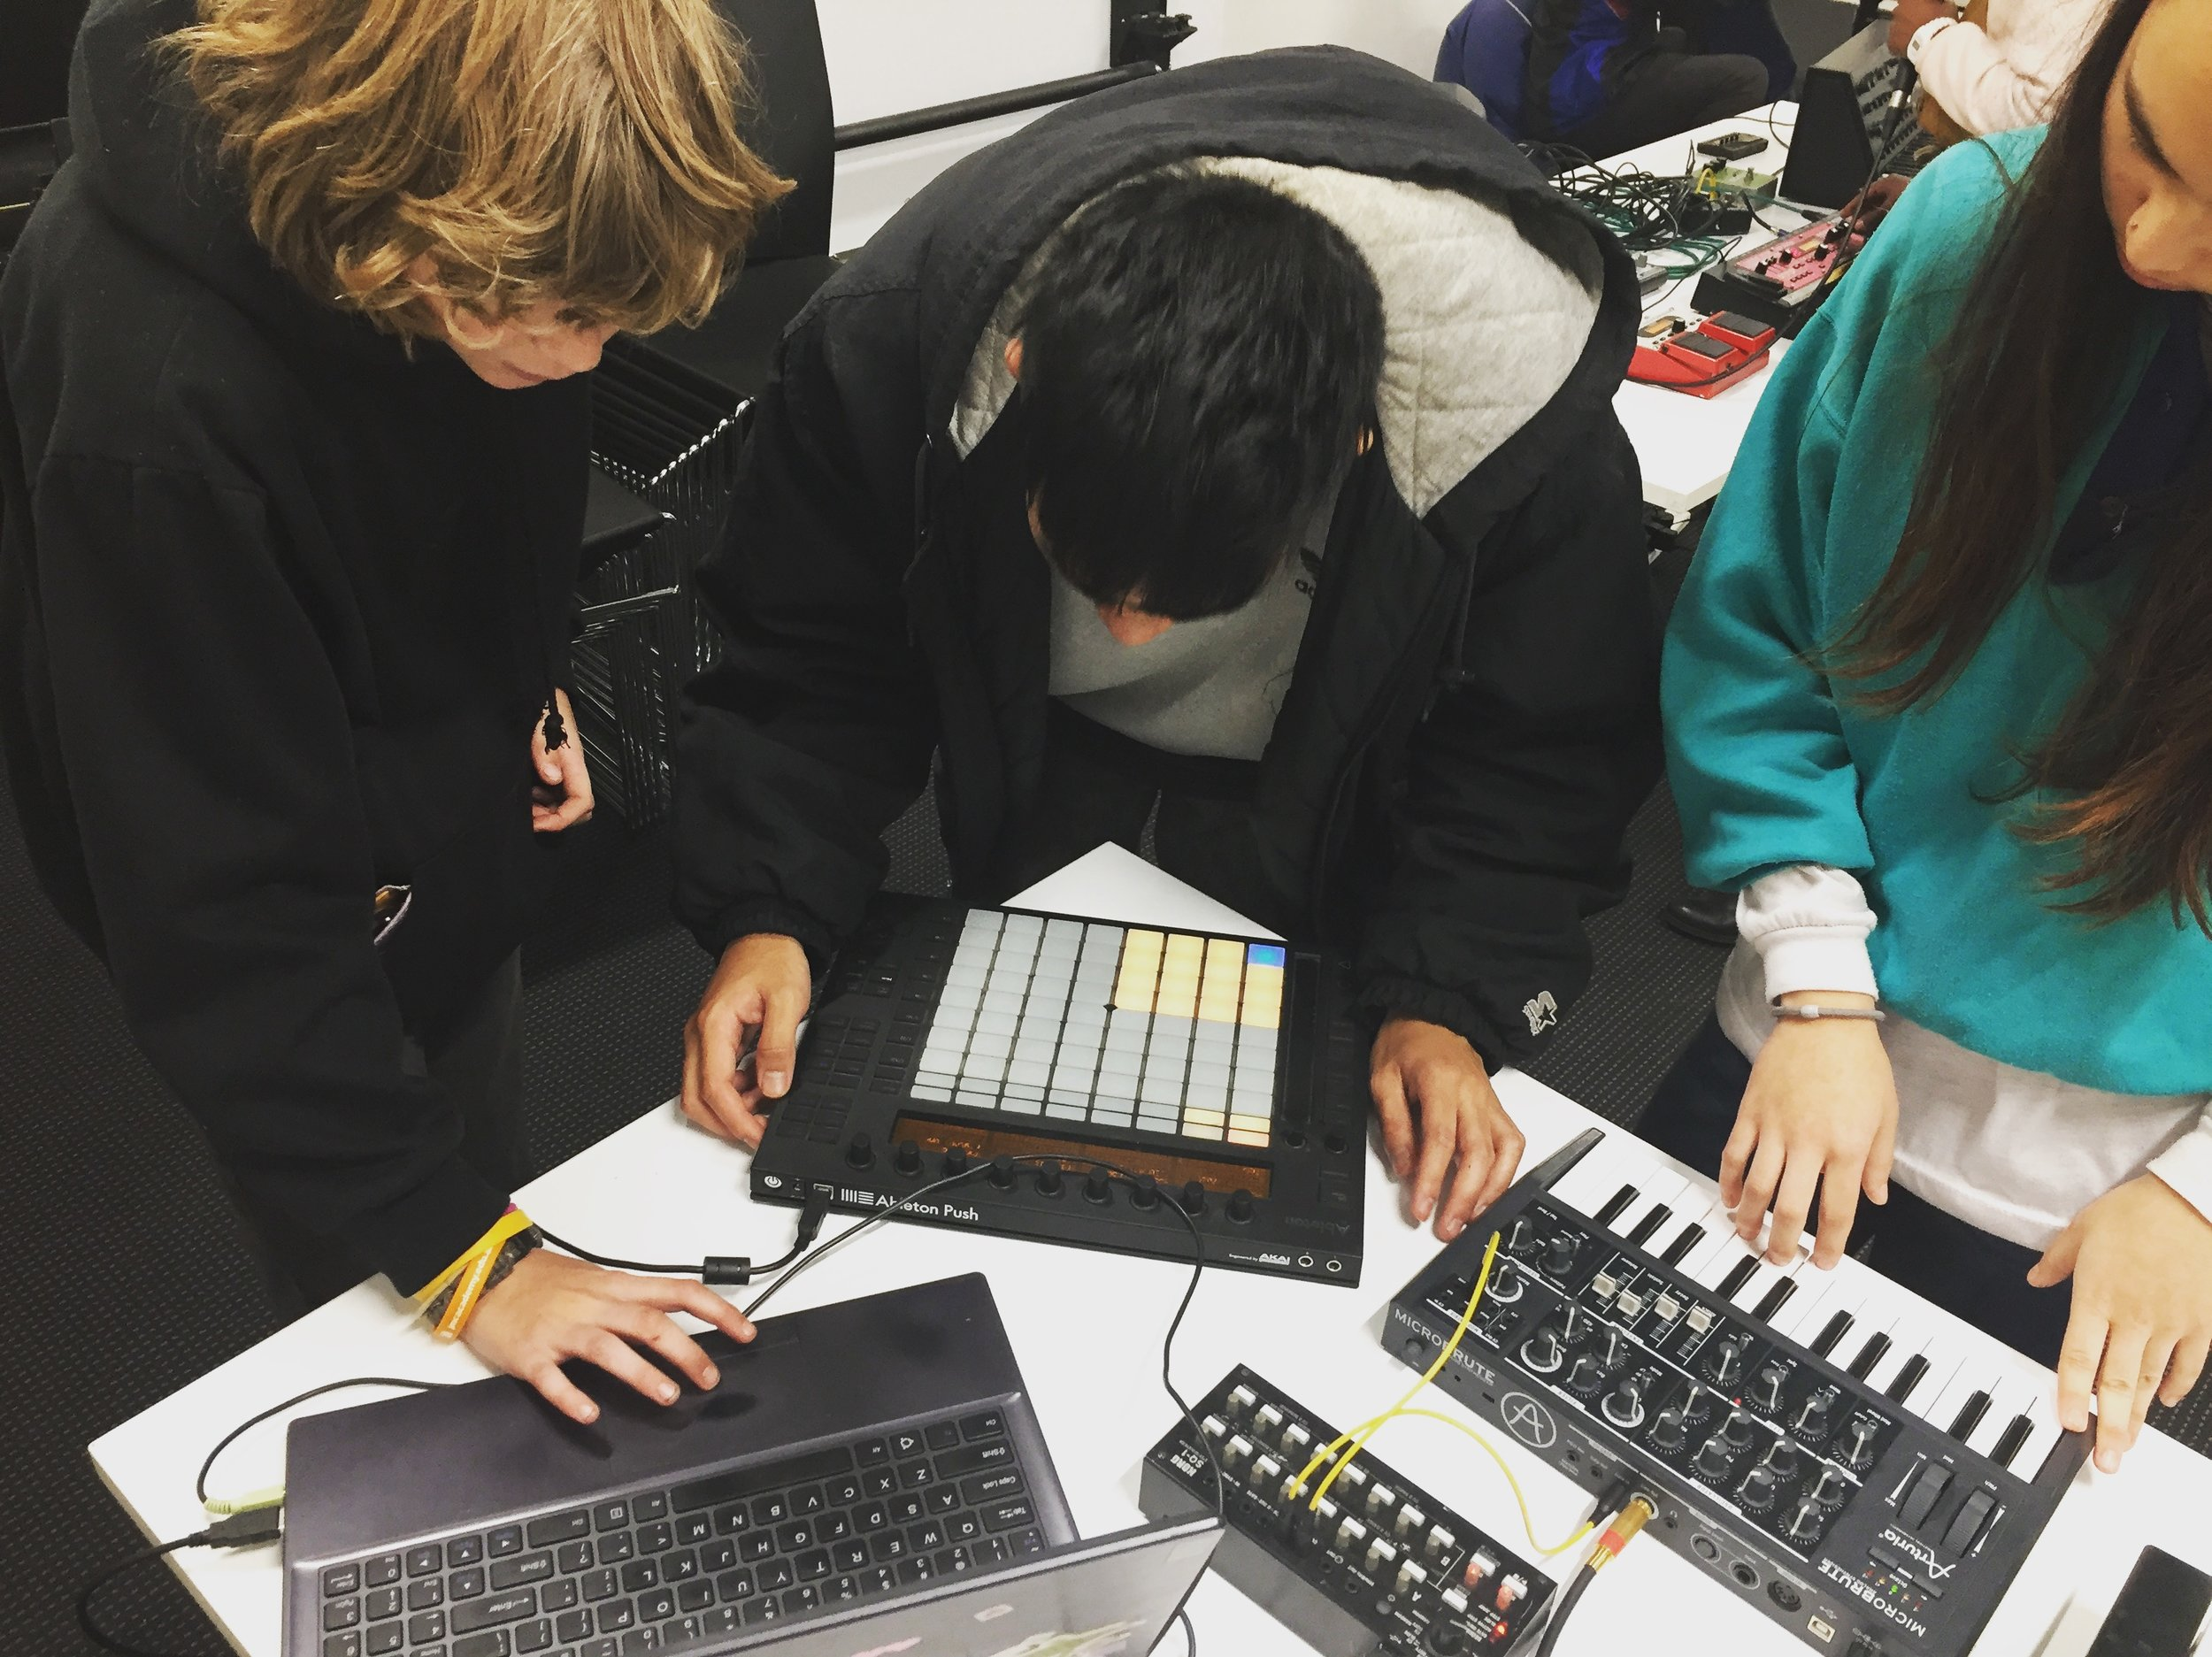 11/5/18: Bridget Chappell: Synthesizers